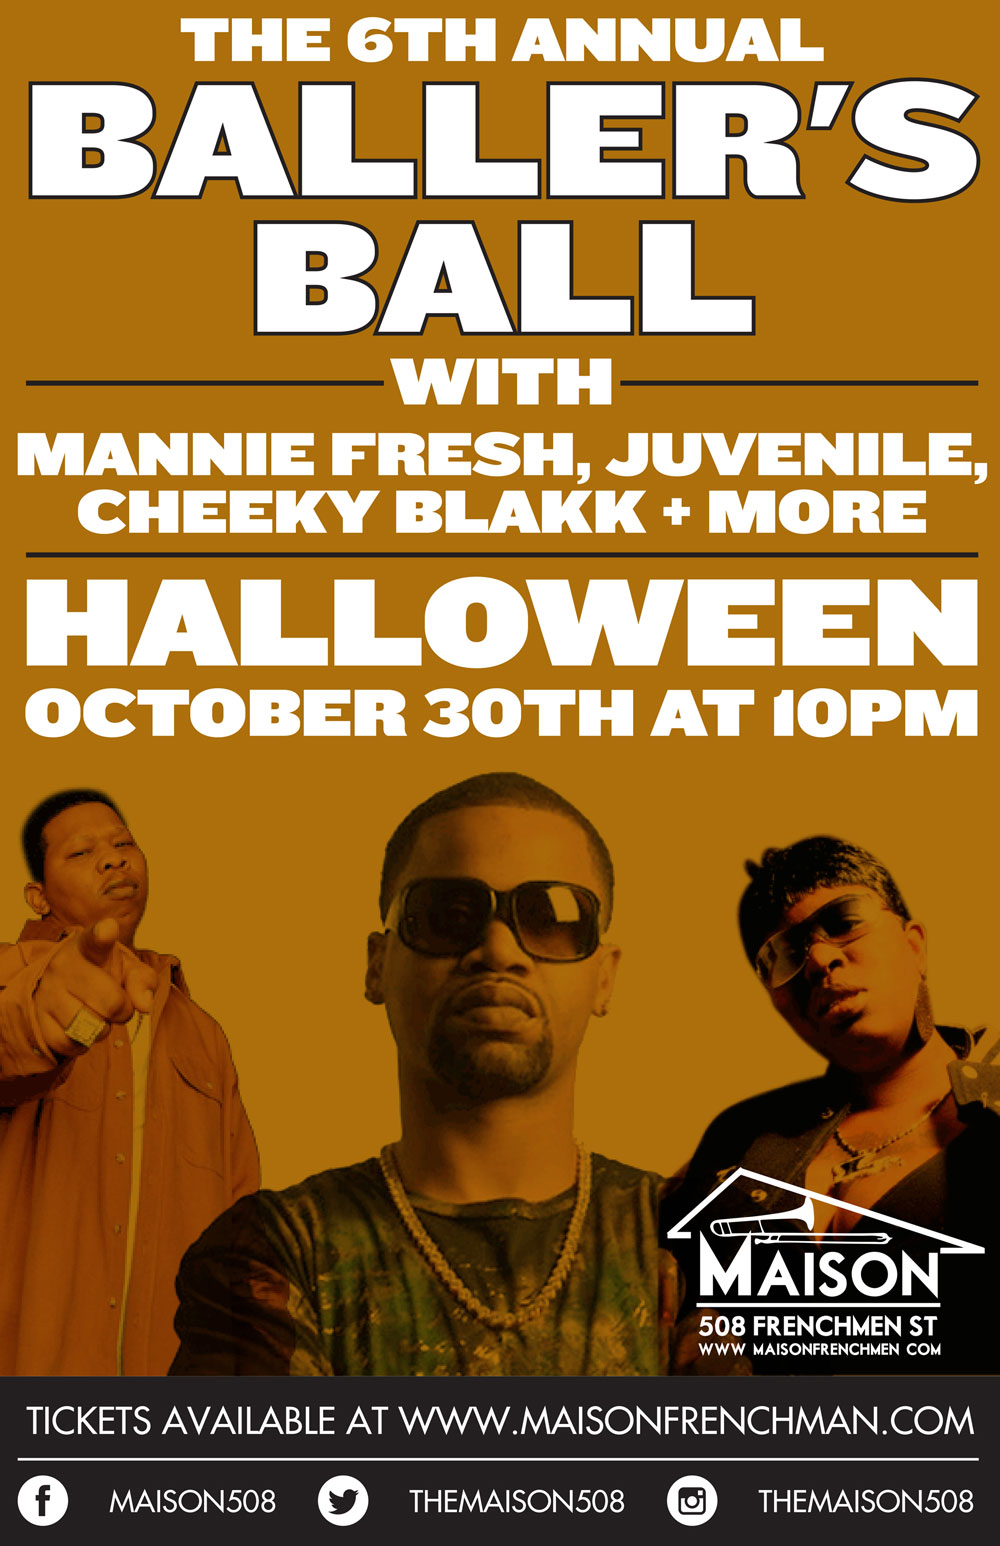 The Sixth Annual Ballers Ball, Halloween weekend at The Maison on Frenchmen Street